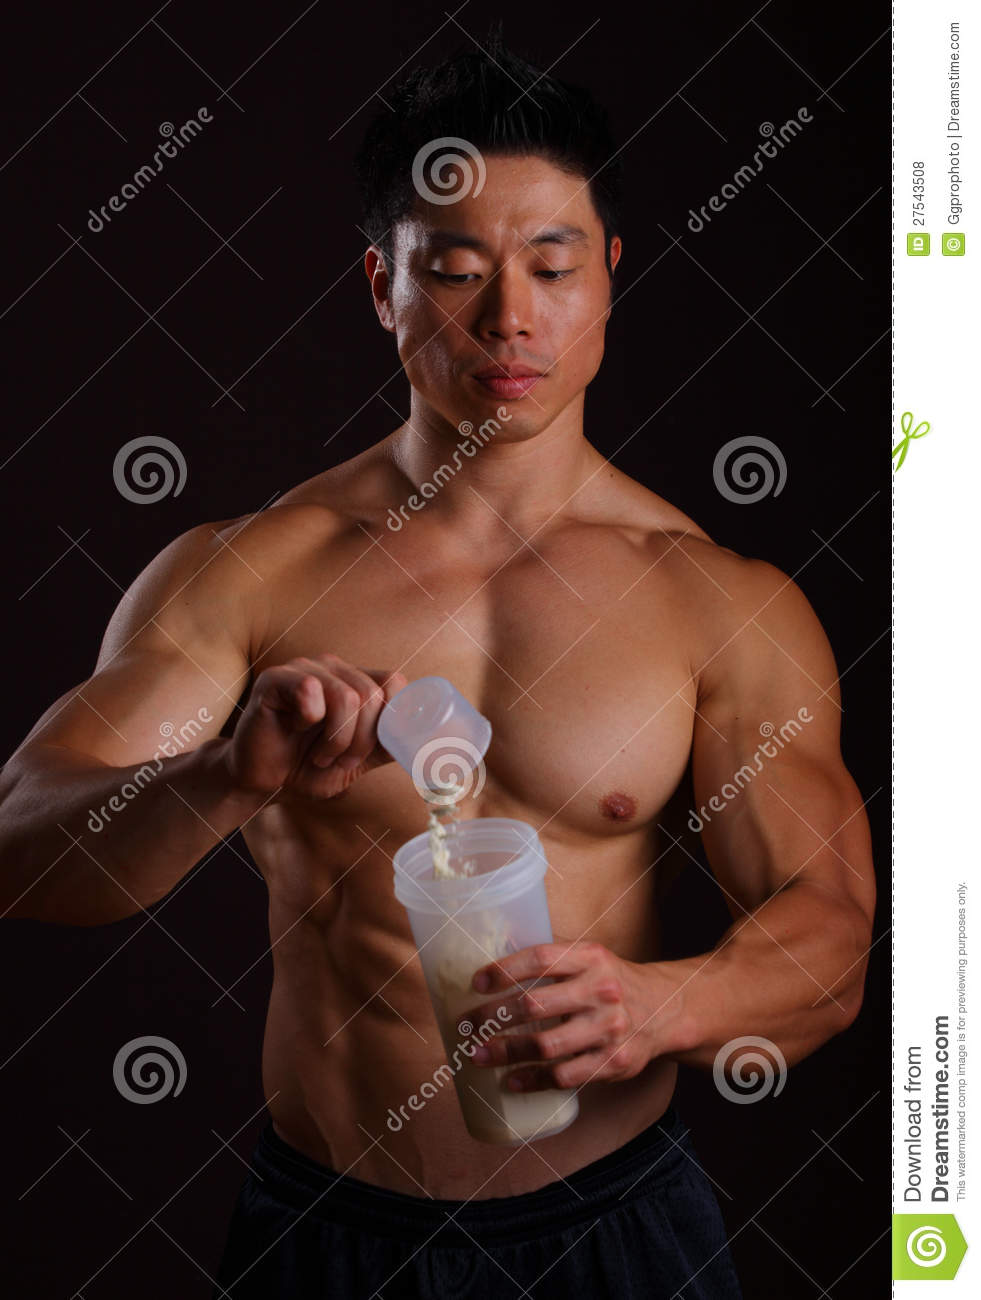 Pouring a scoop of protein shake